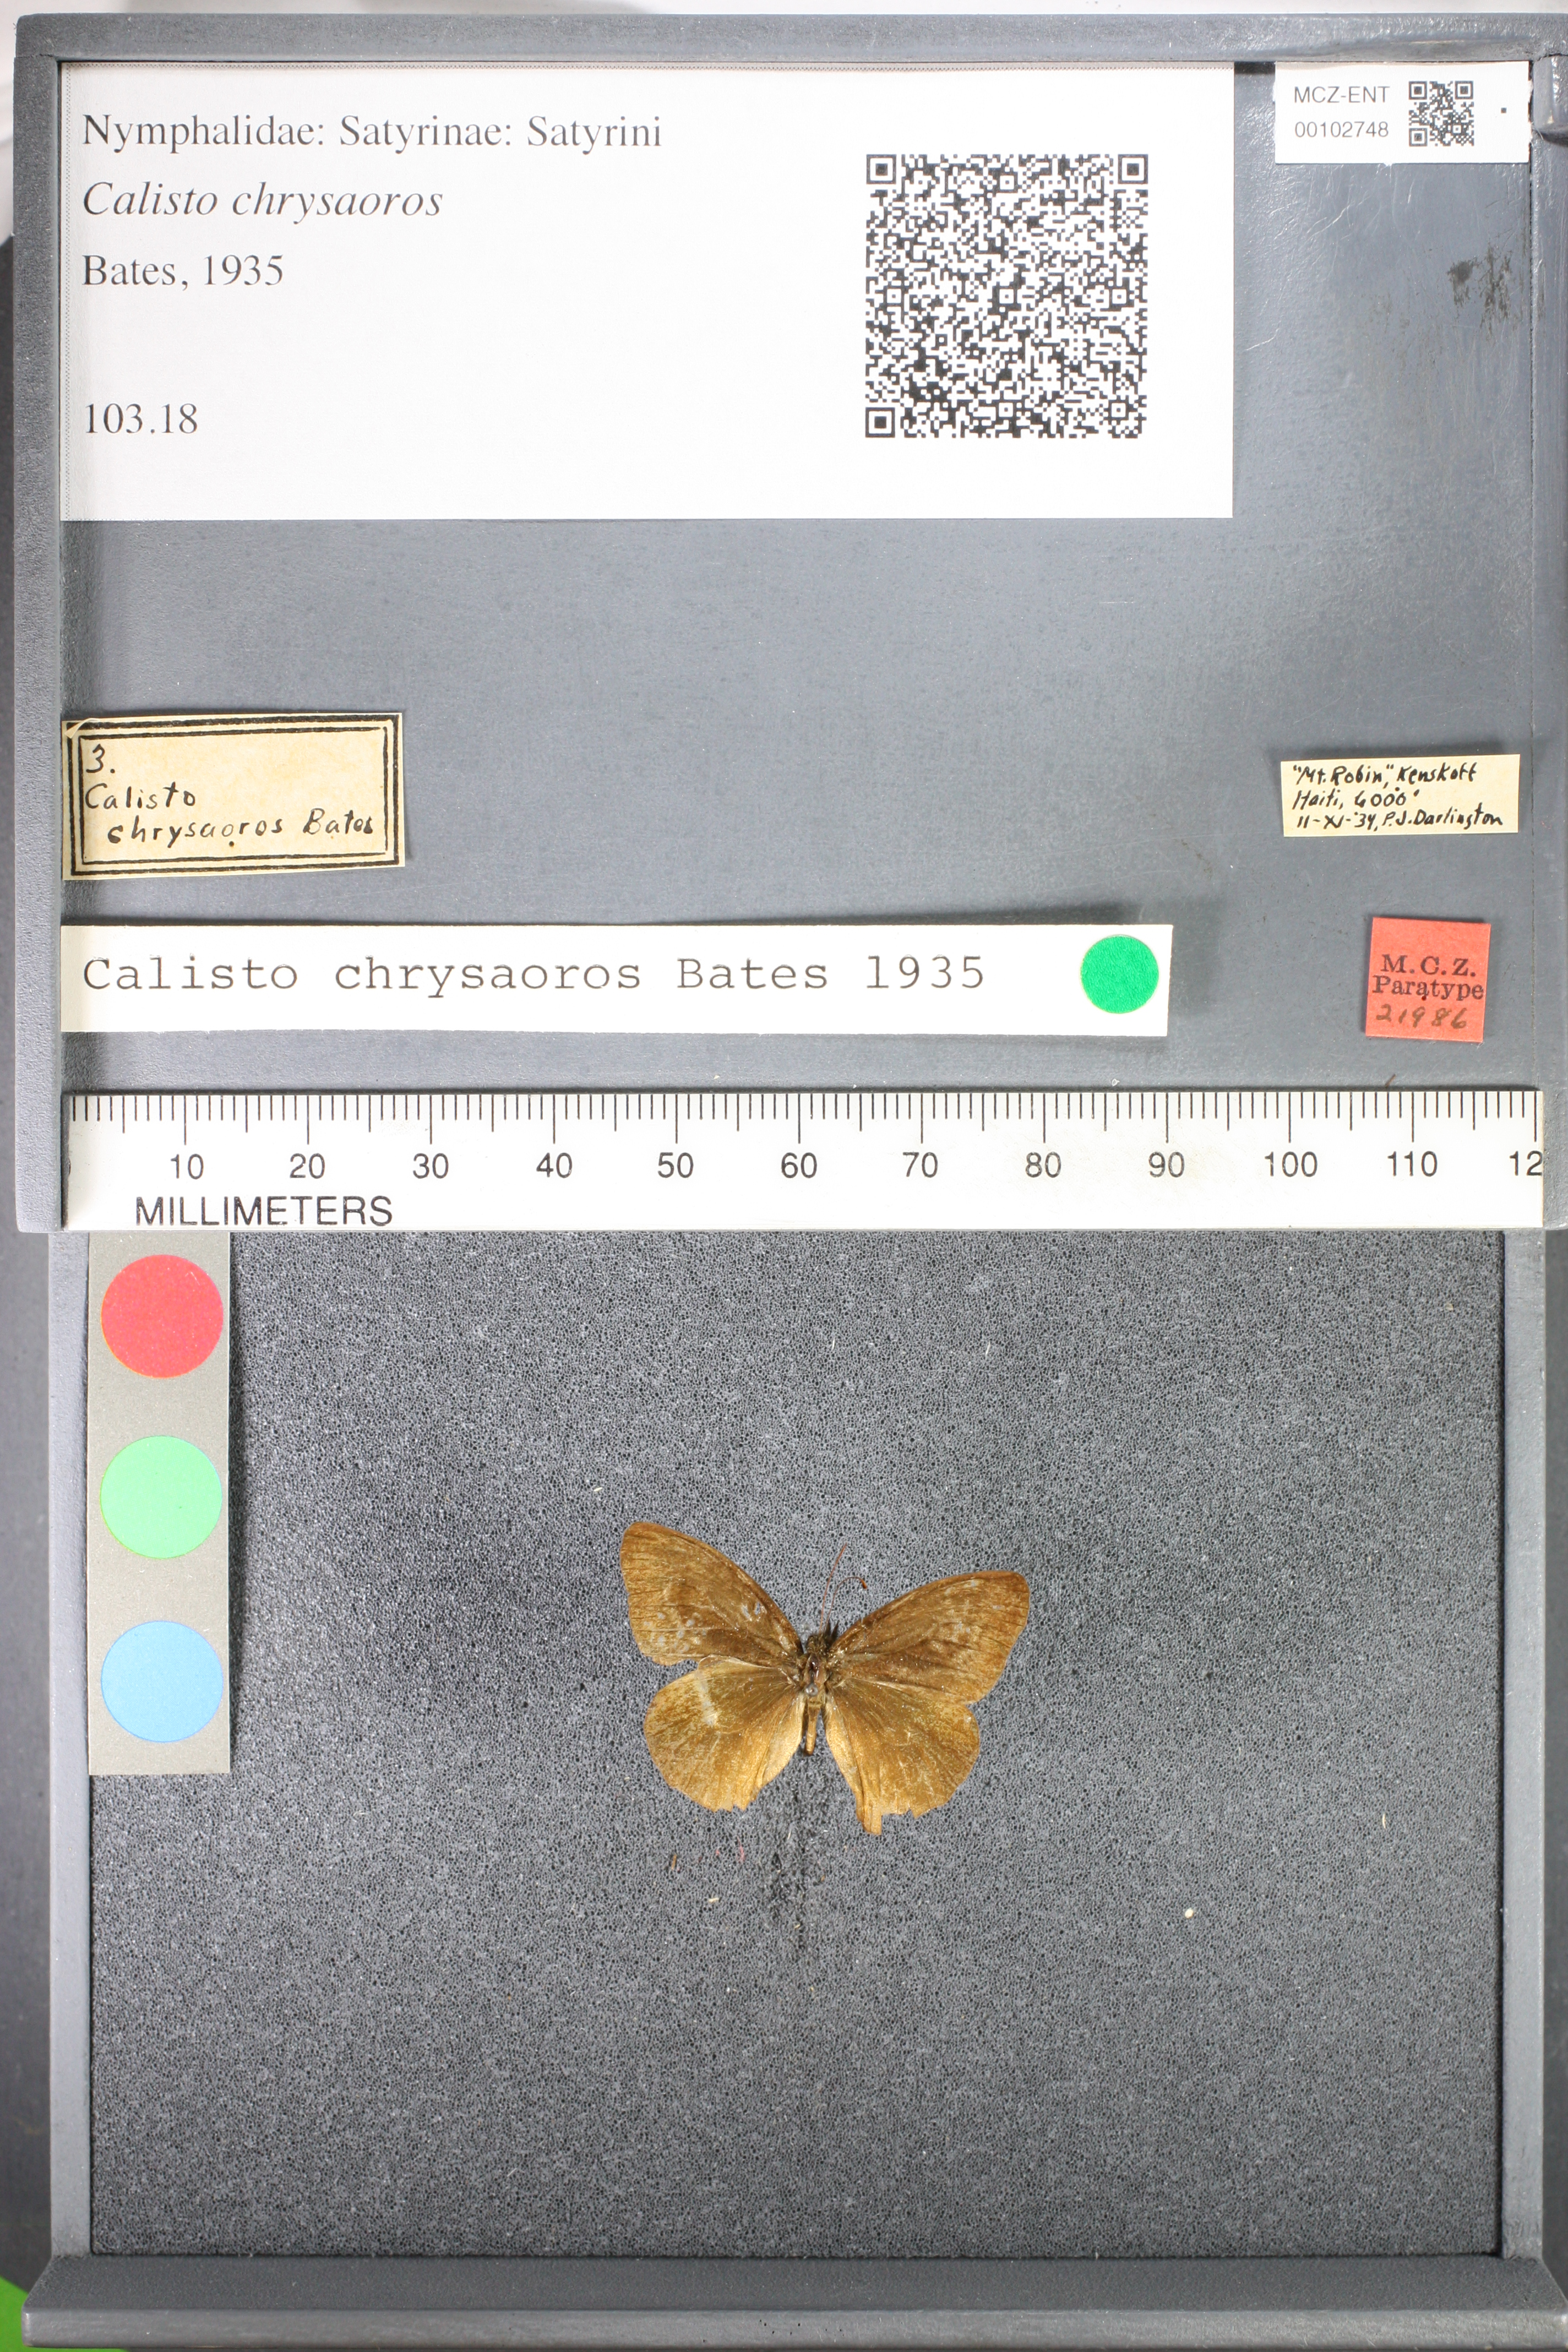 Media of type image, MCZ:Ent:102748 Identified as Calisto chrysaoros type status Paratype of Calisto chrysaoros.